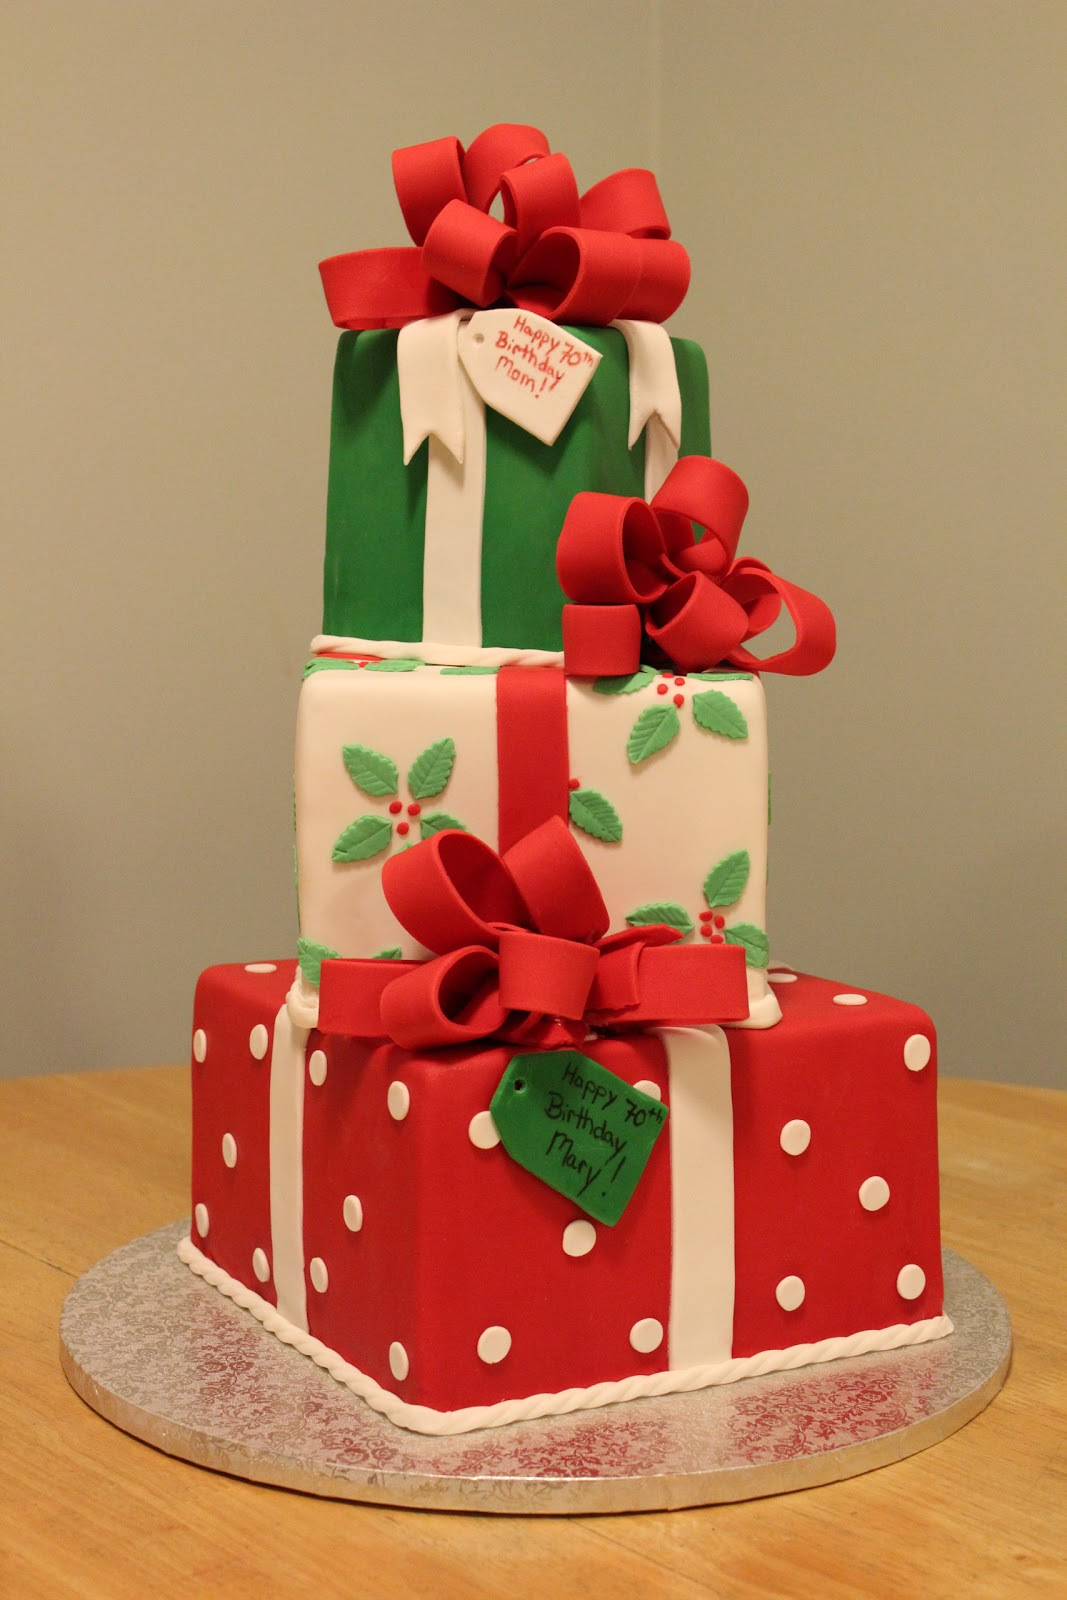 Christmas Cake Ideas Presents : The Red-Headed Baker: Christmas Present Box Cake